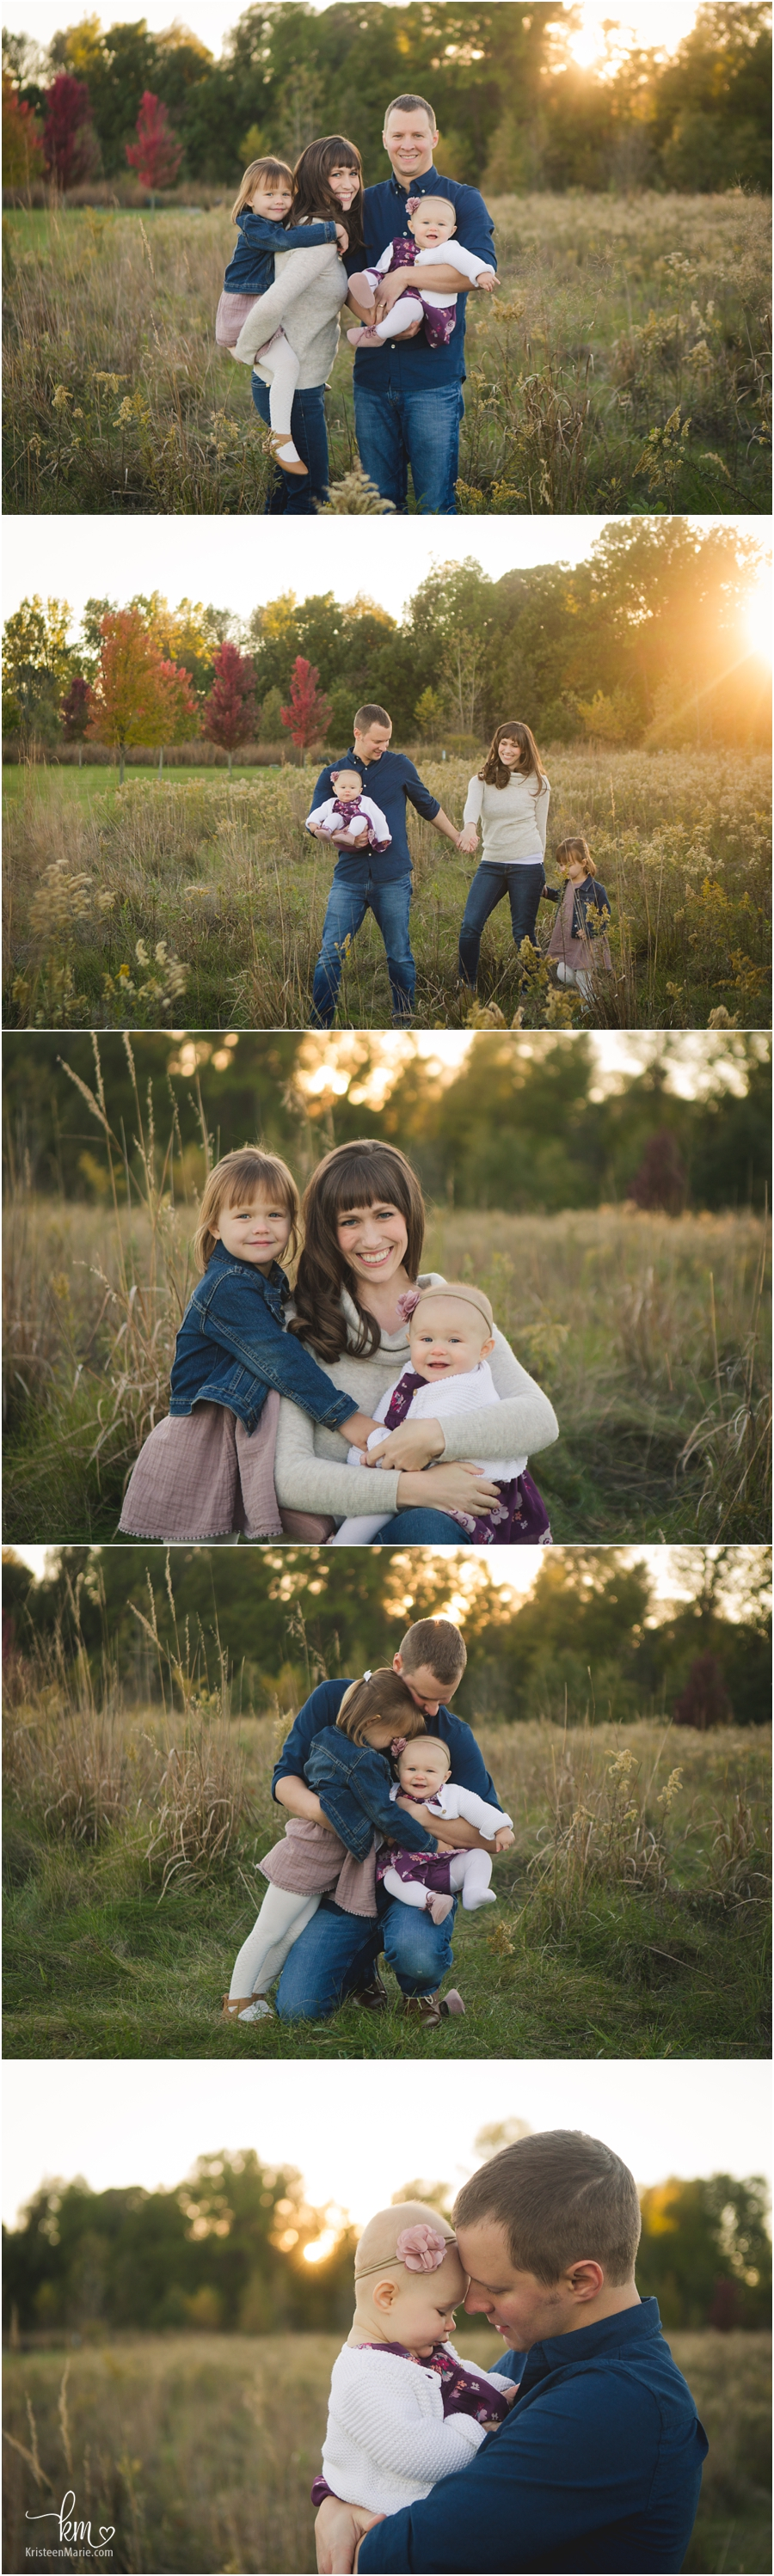 family pictures in a field - Carmel, Indiana family photography